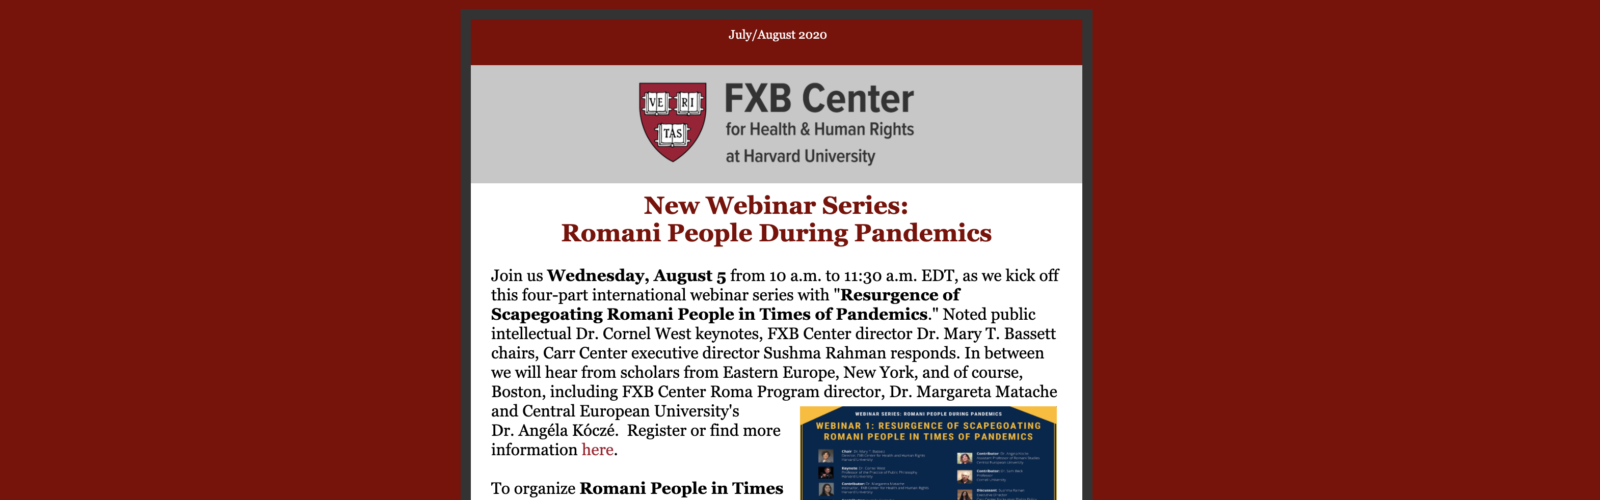 Read the Latest News from the FXB Center